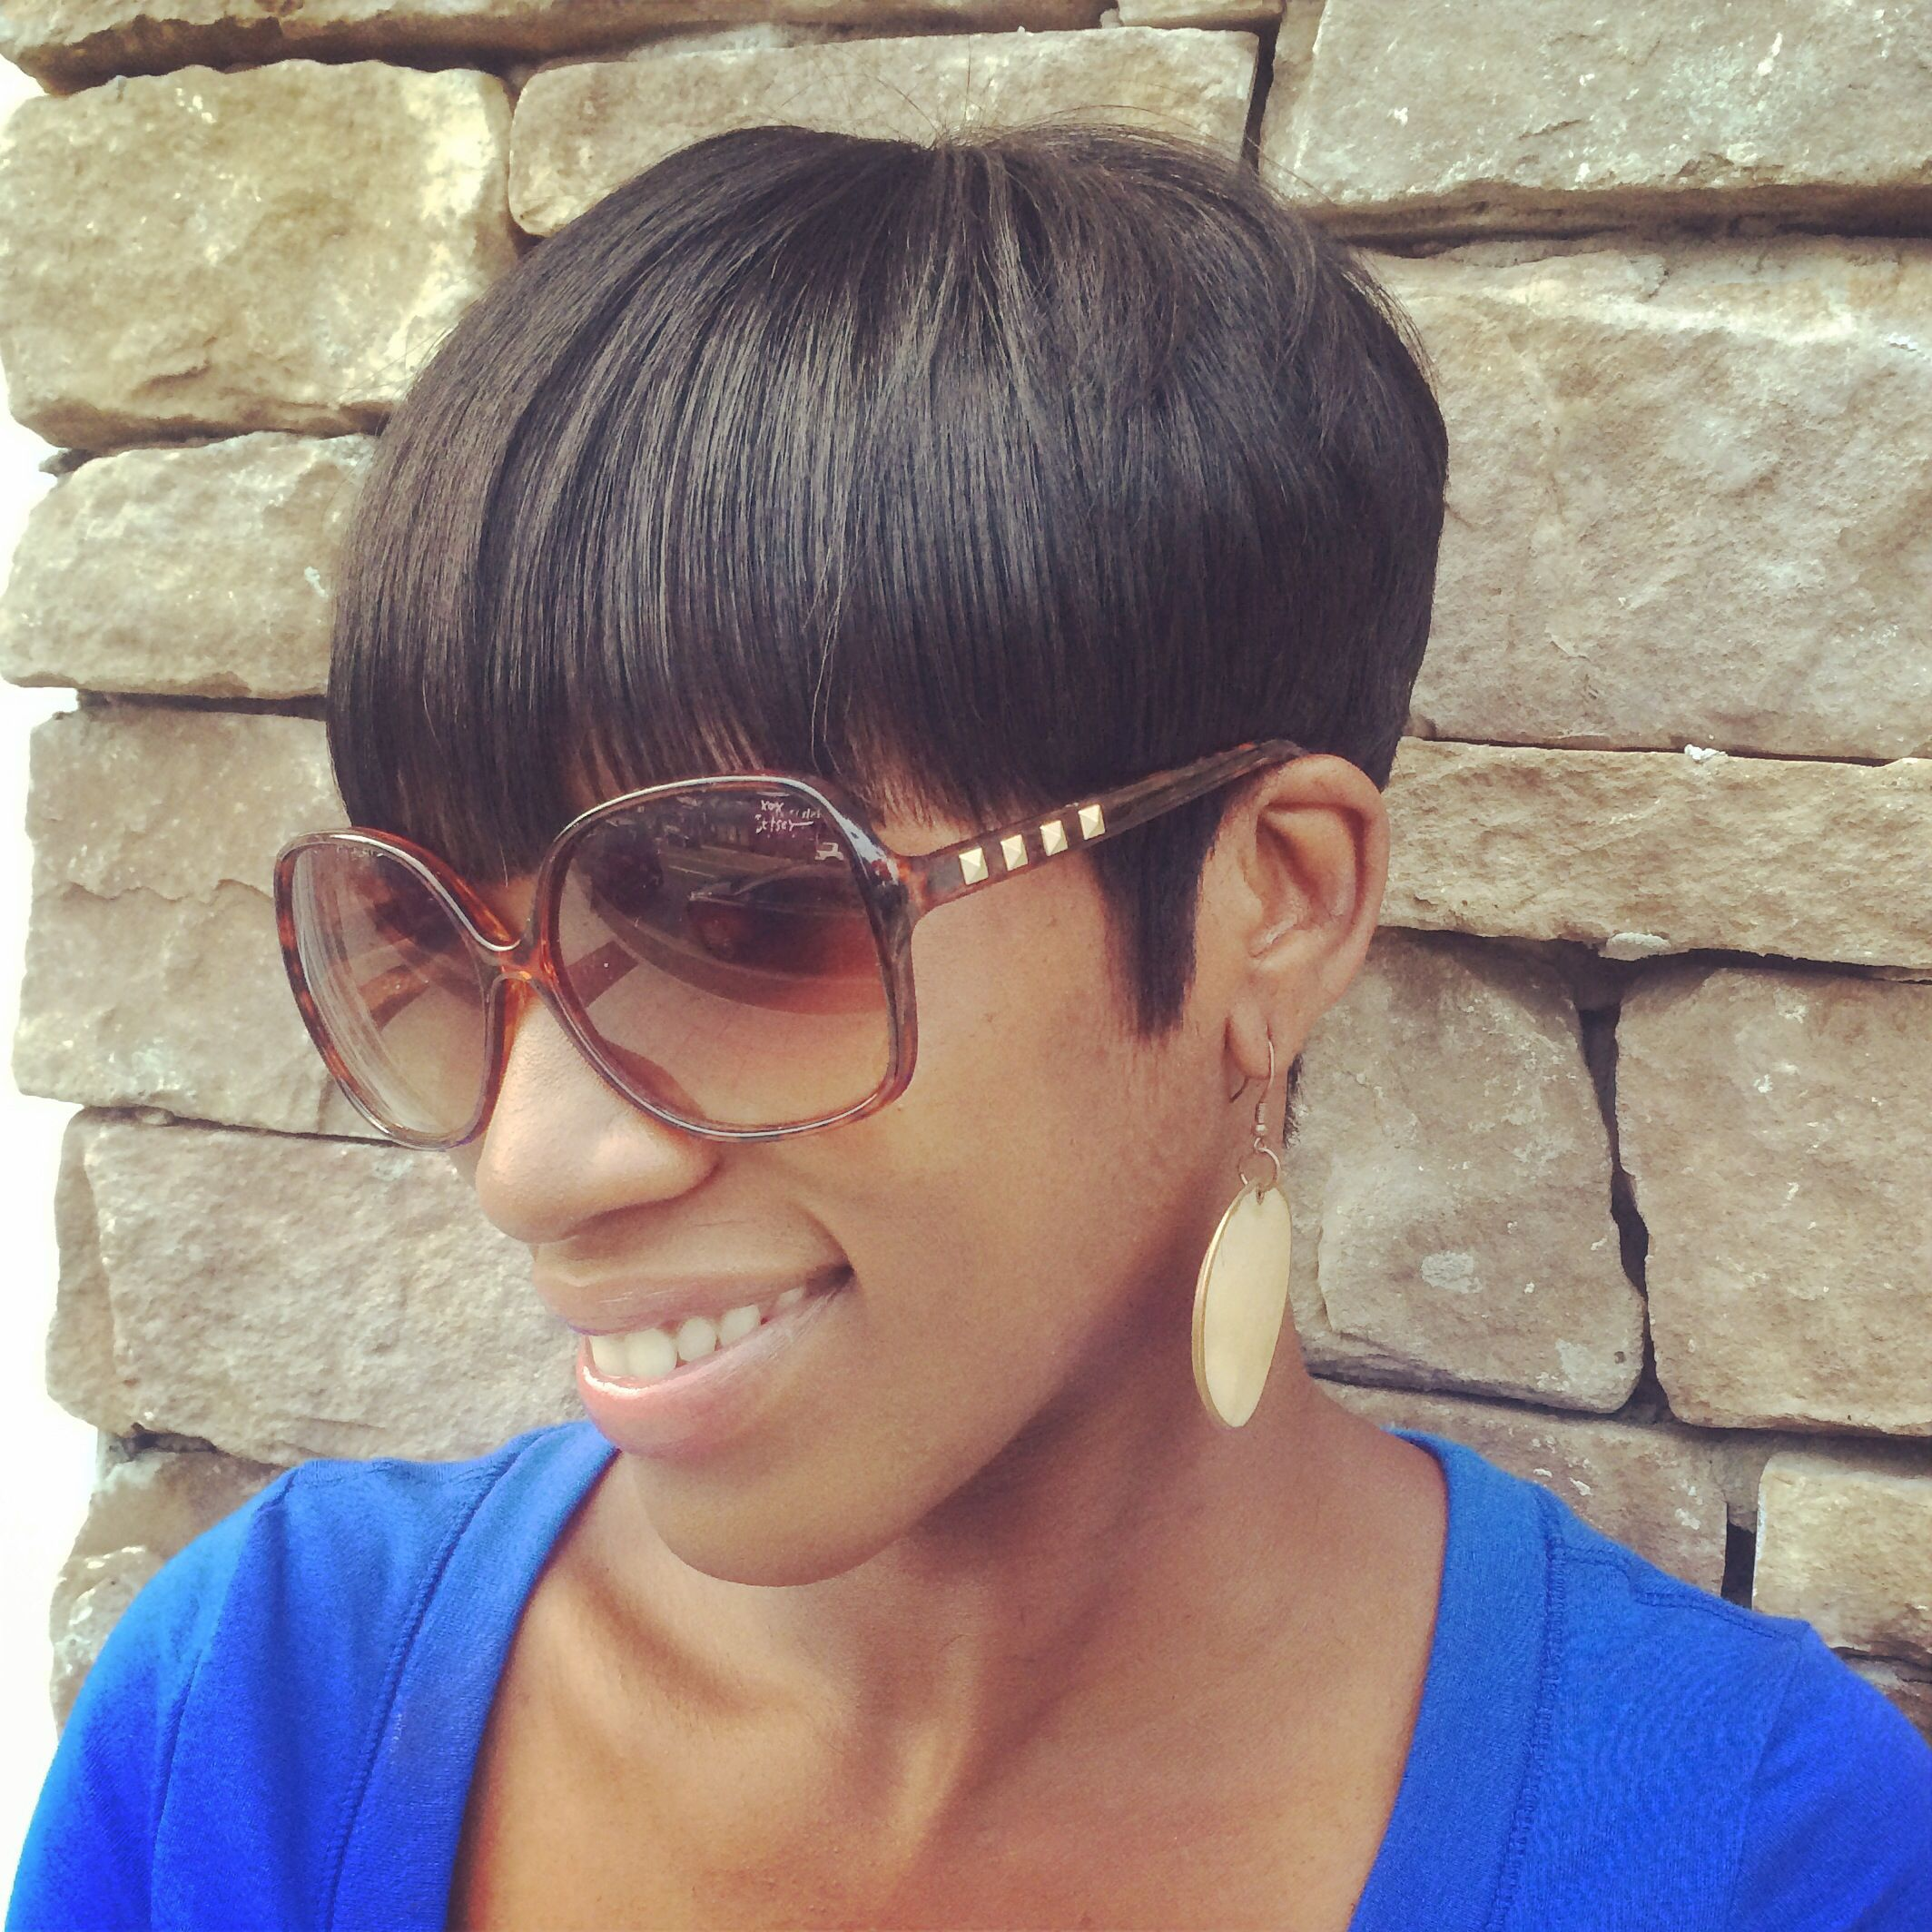 bowl cut short hair style on relaxed hair | short hairstyles for